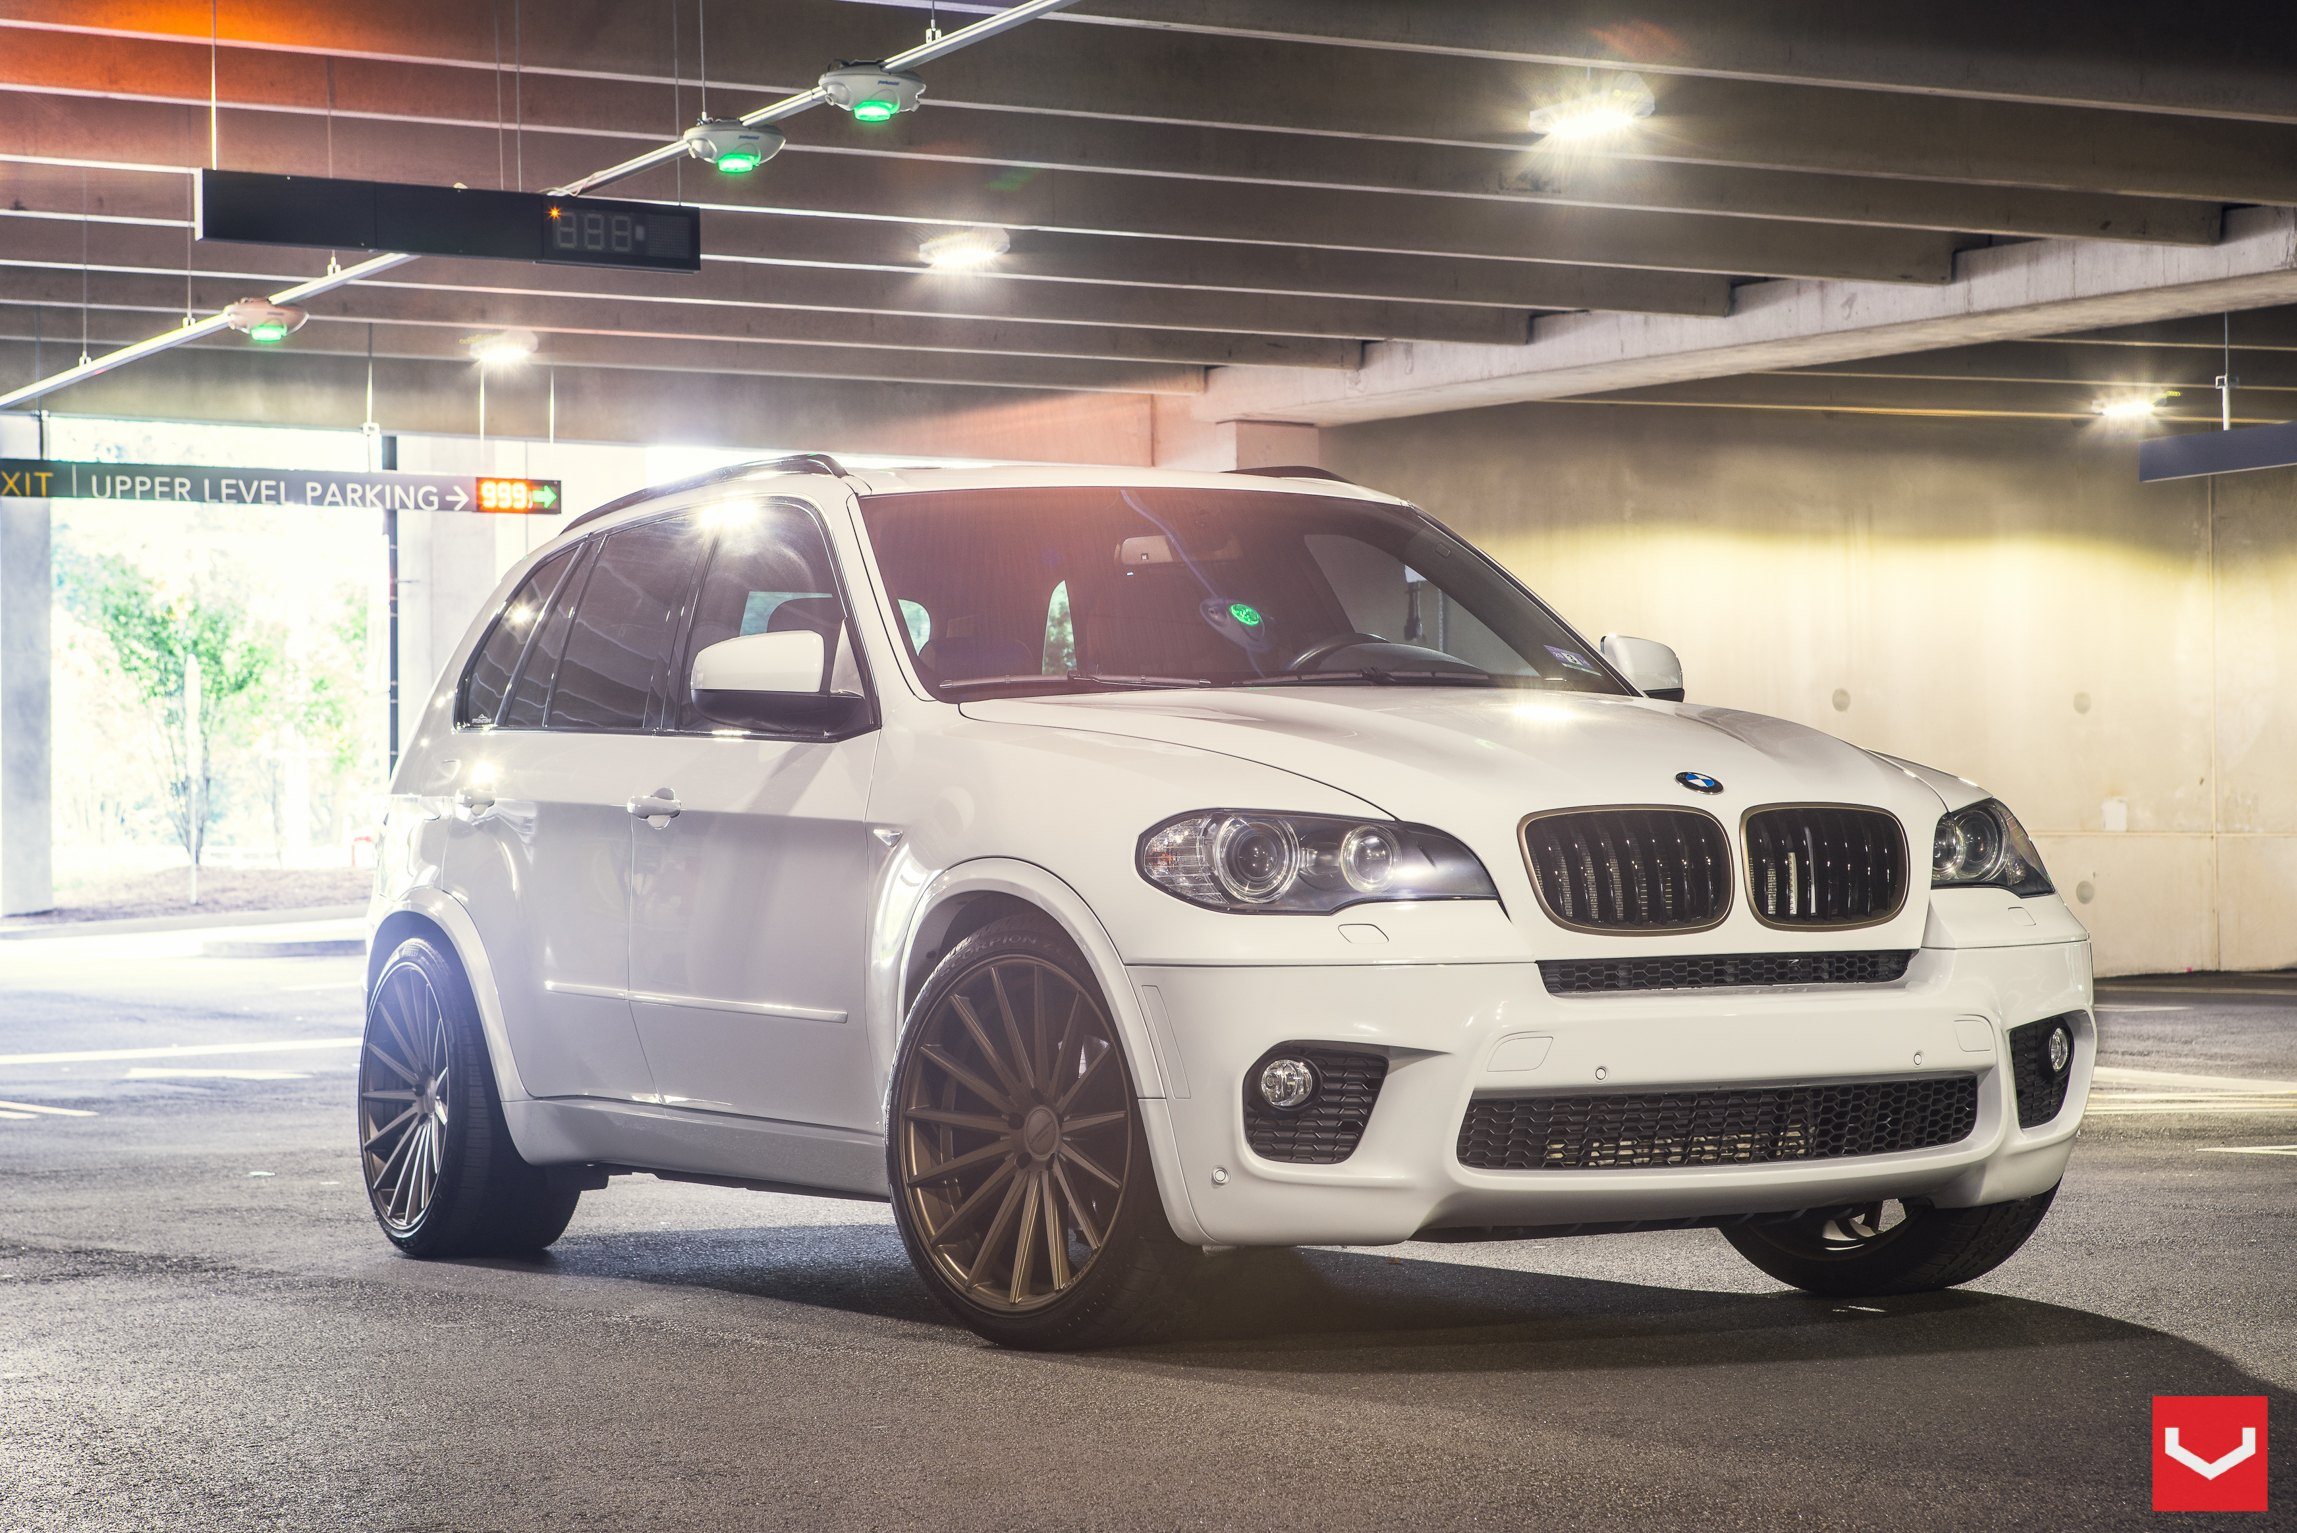 White Bmw X5 Featuring Boosted Lighting And Custom Wheels Carid Com Gallery